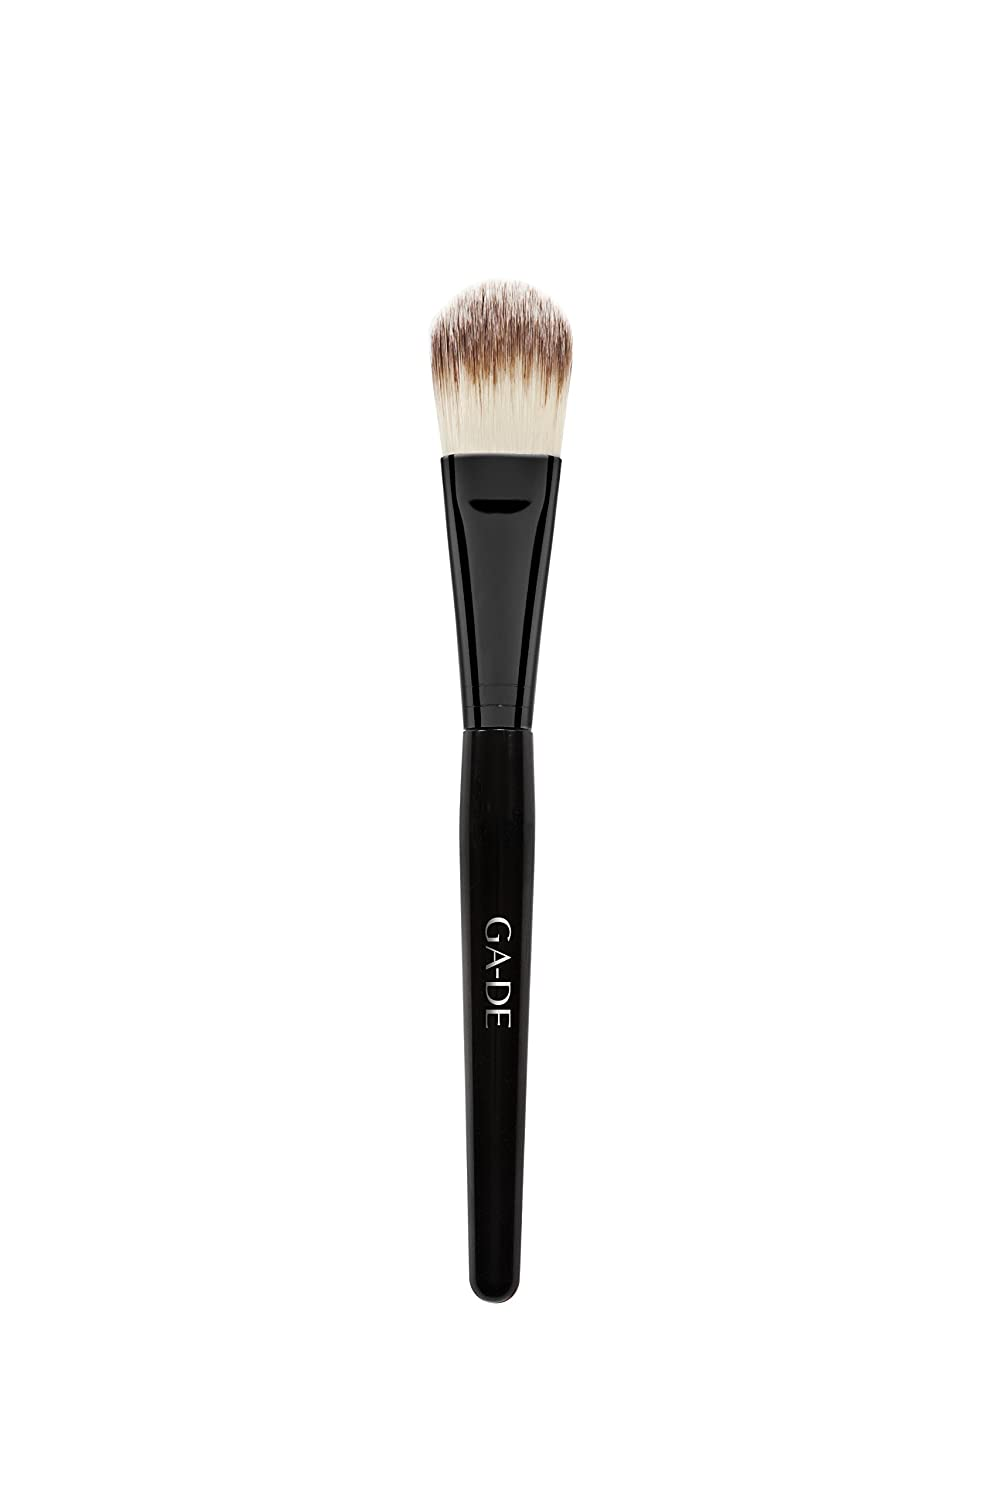 GA-DE Foundation Brush 7290103335298